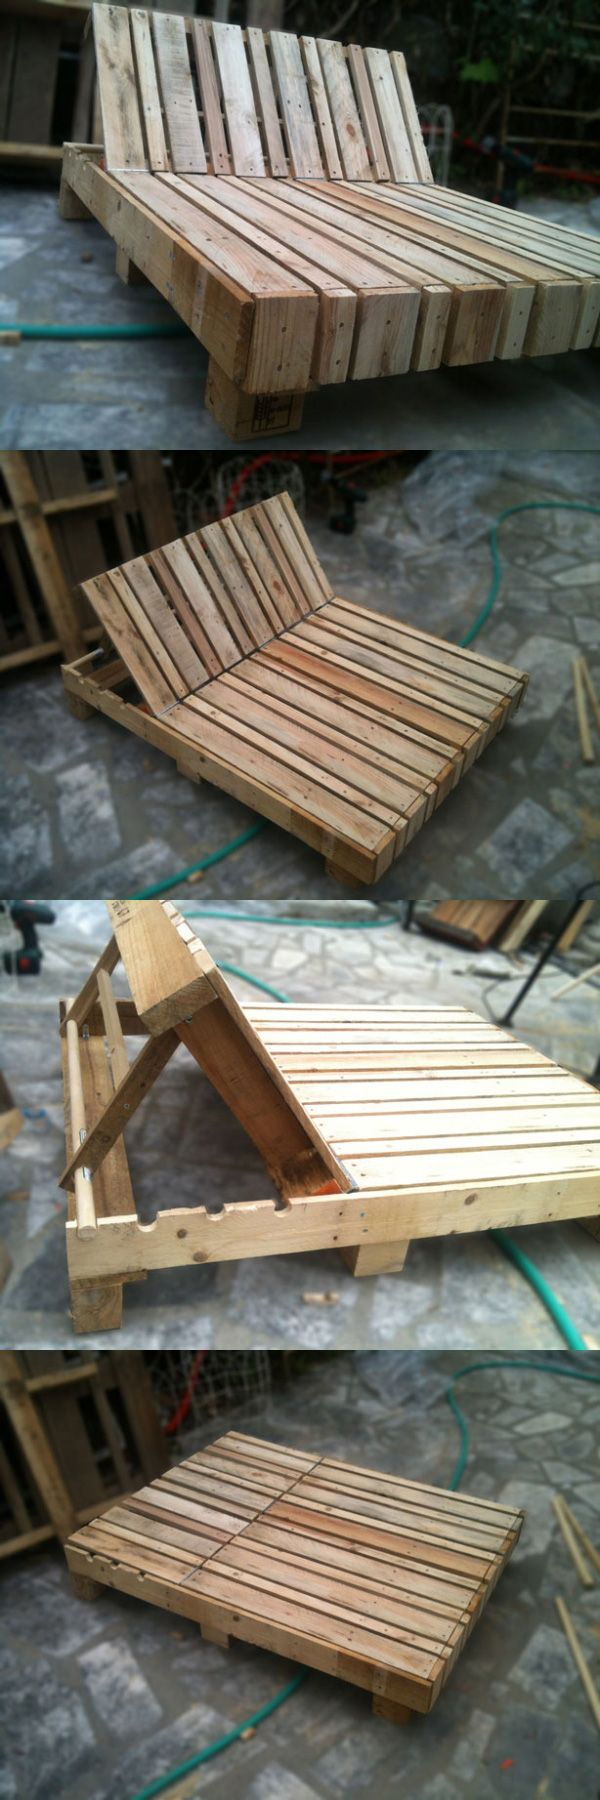 20-Furniture-You-Can-Create-Using-Old-Pallets-19